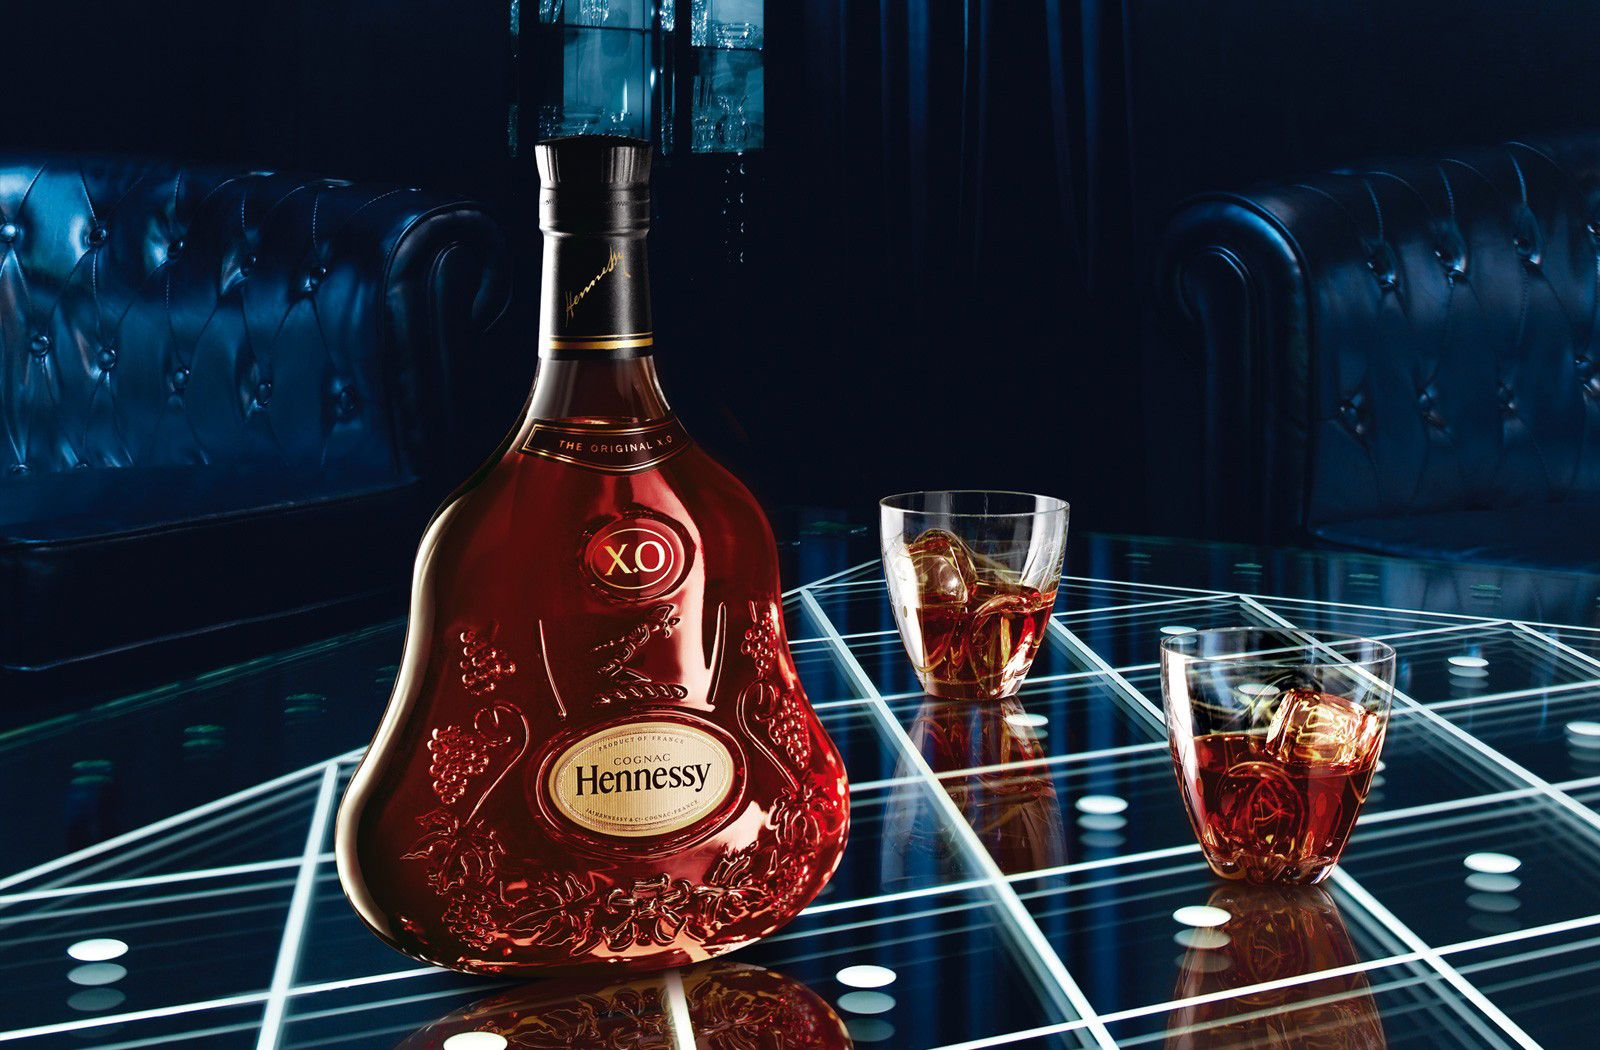 Free Download Hd Wallpaper Cognac Hennessy Alcohol Drink